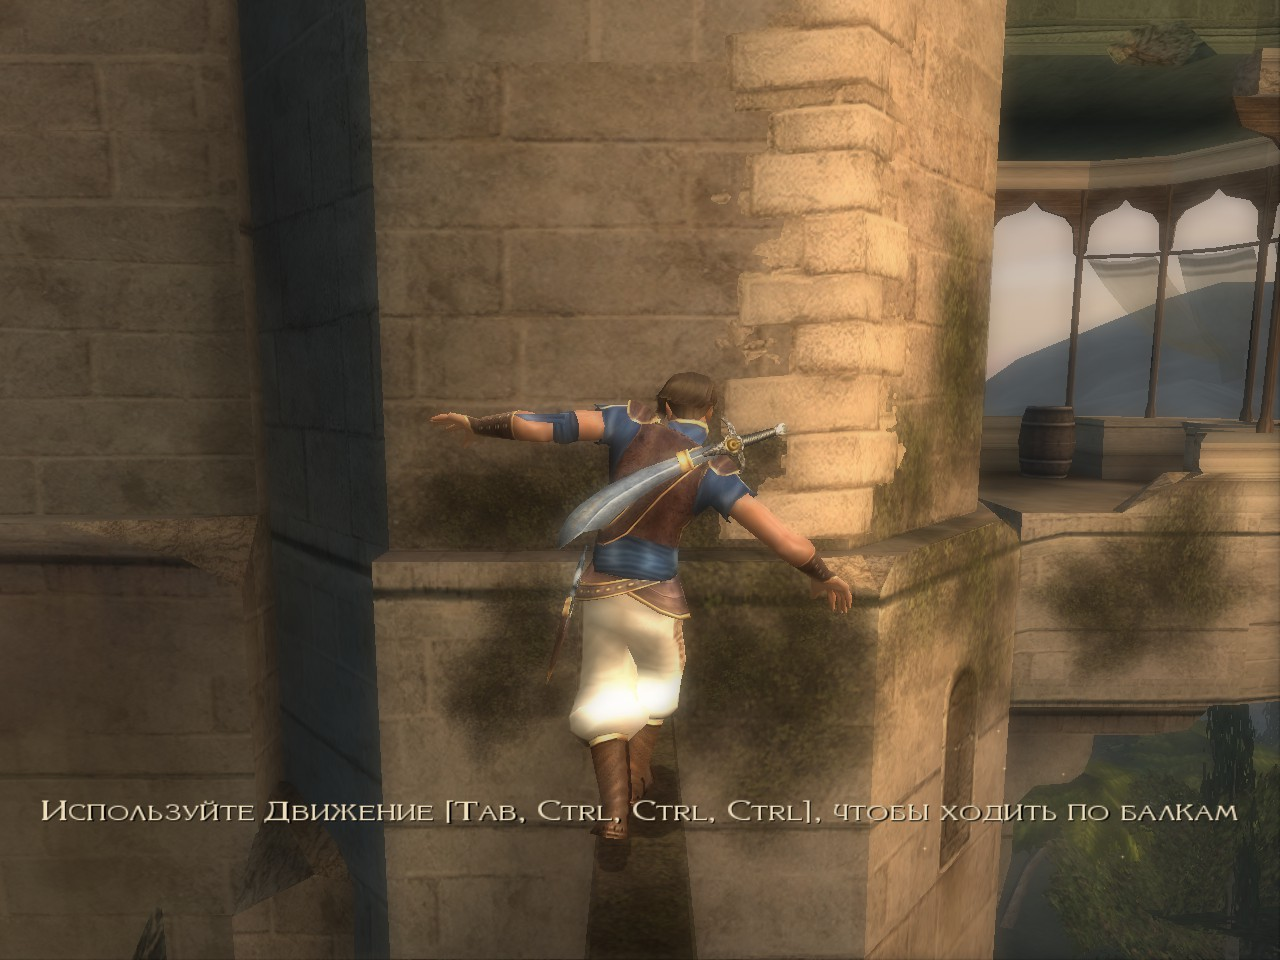 POP 2014-05-22 12-12-09-49.jpg - Prince of Persia: The Sands of Time